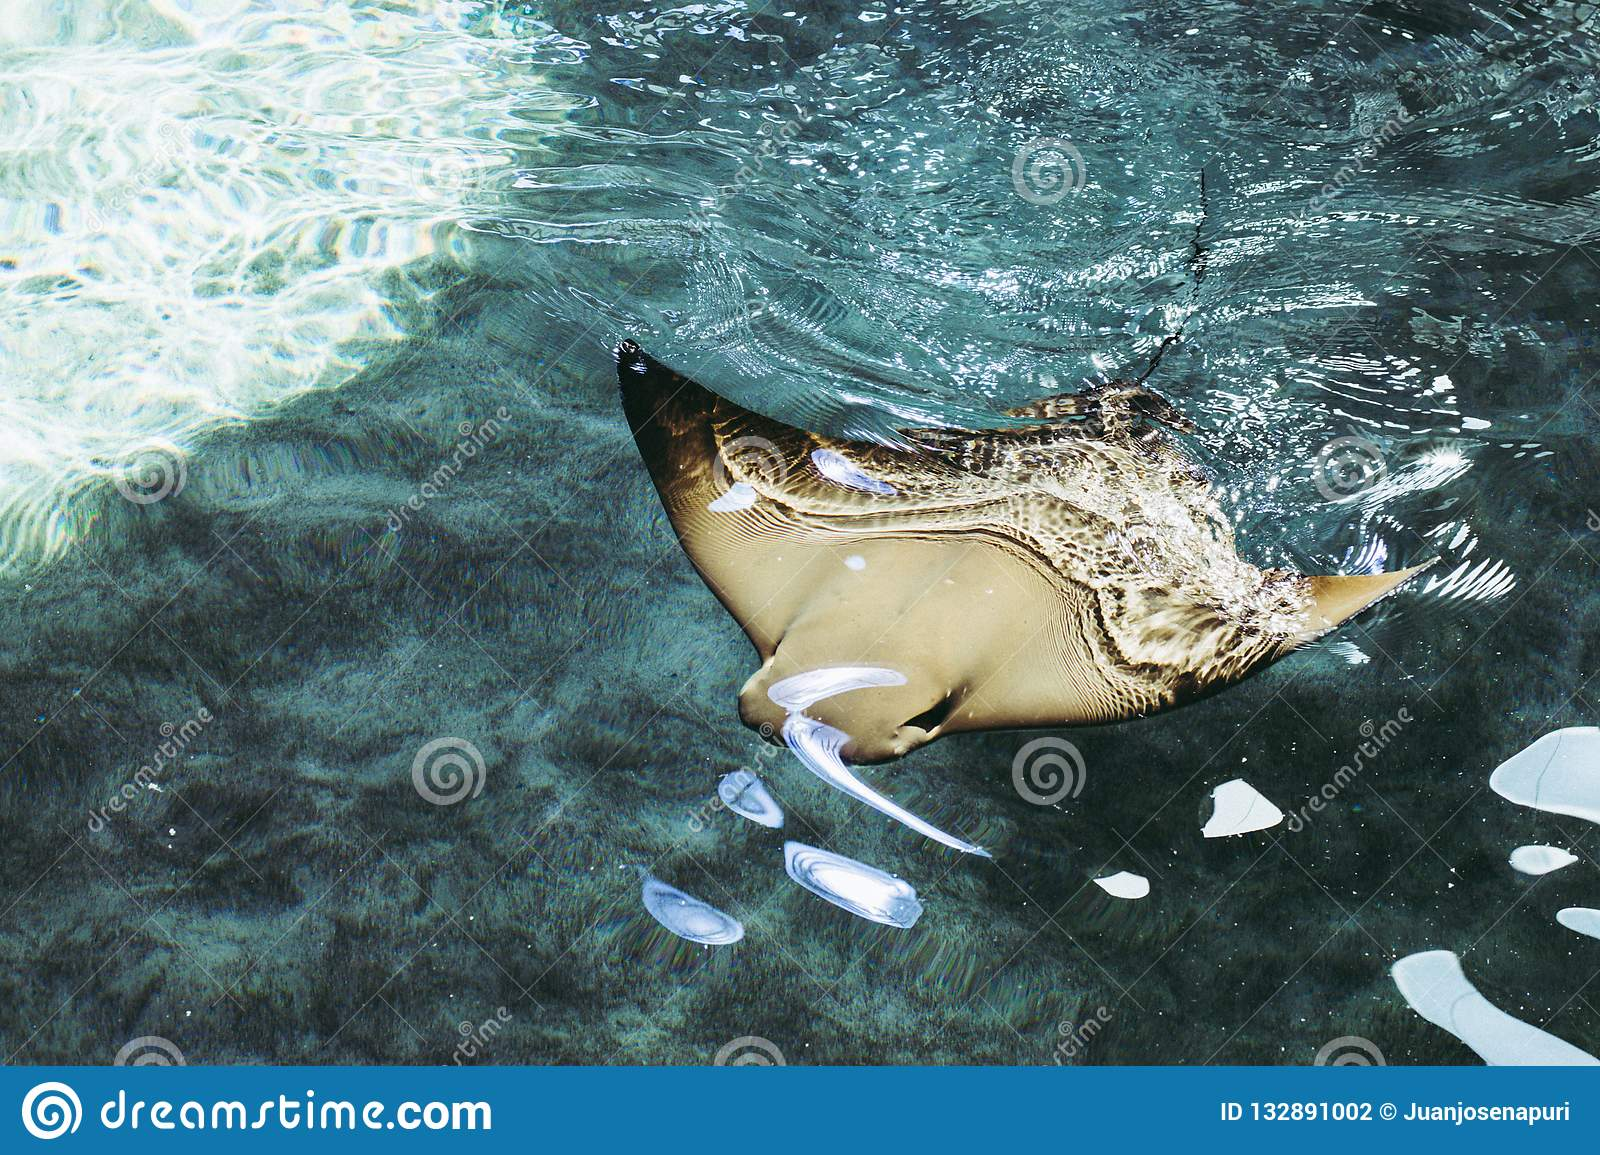 Manta Ray swimming on the blue clear water.